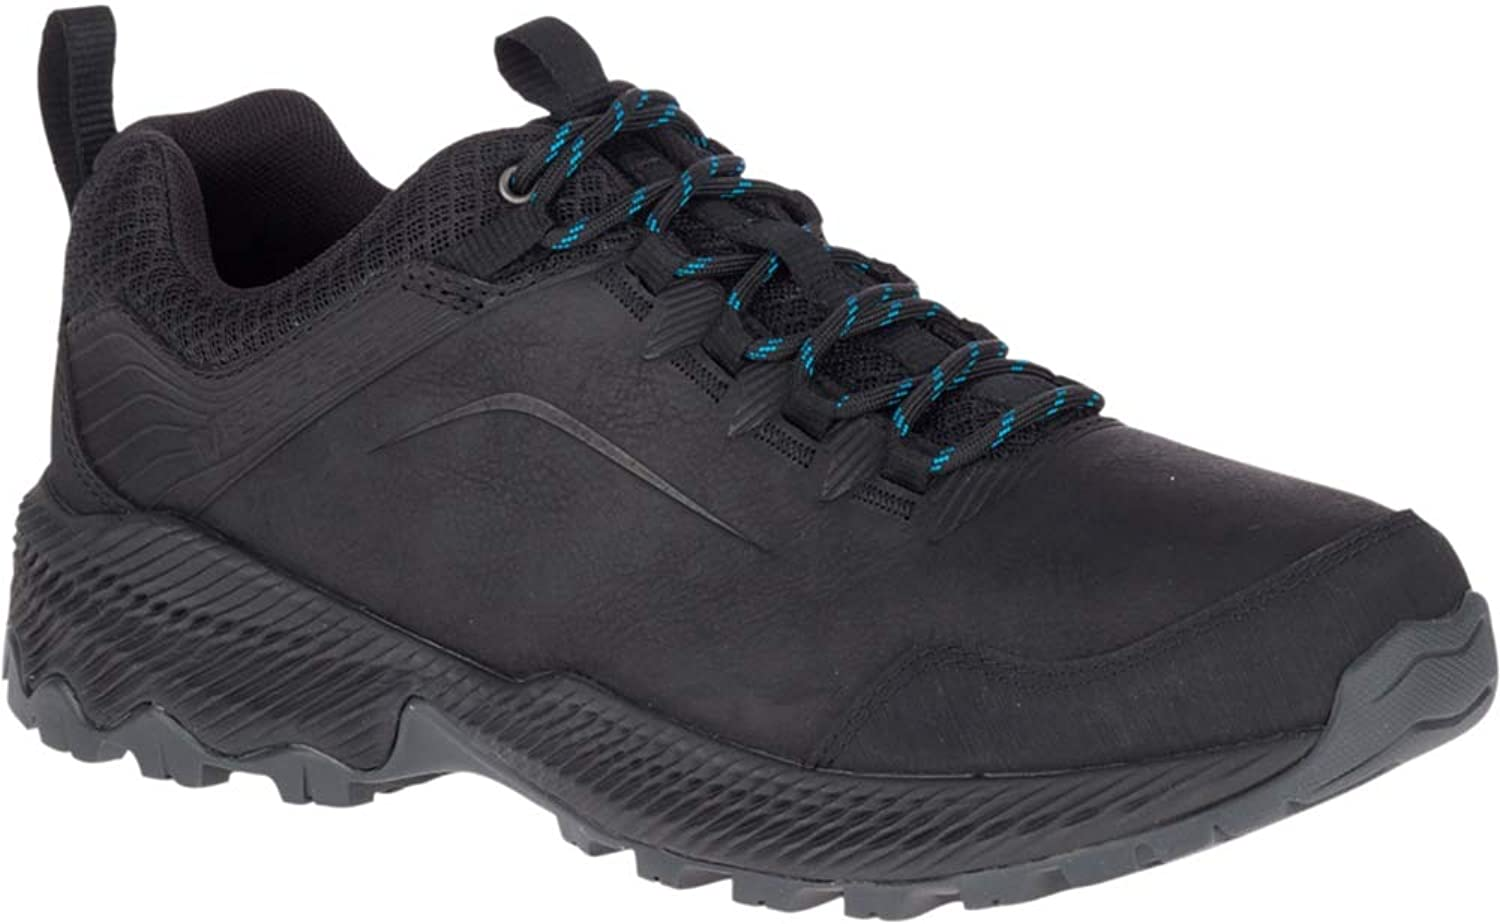 Merrell Forestbound J77285 Outdoor Hiking Trekking Trainers Athletic shoes Mens J77285 Black 11.5 UK